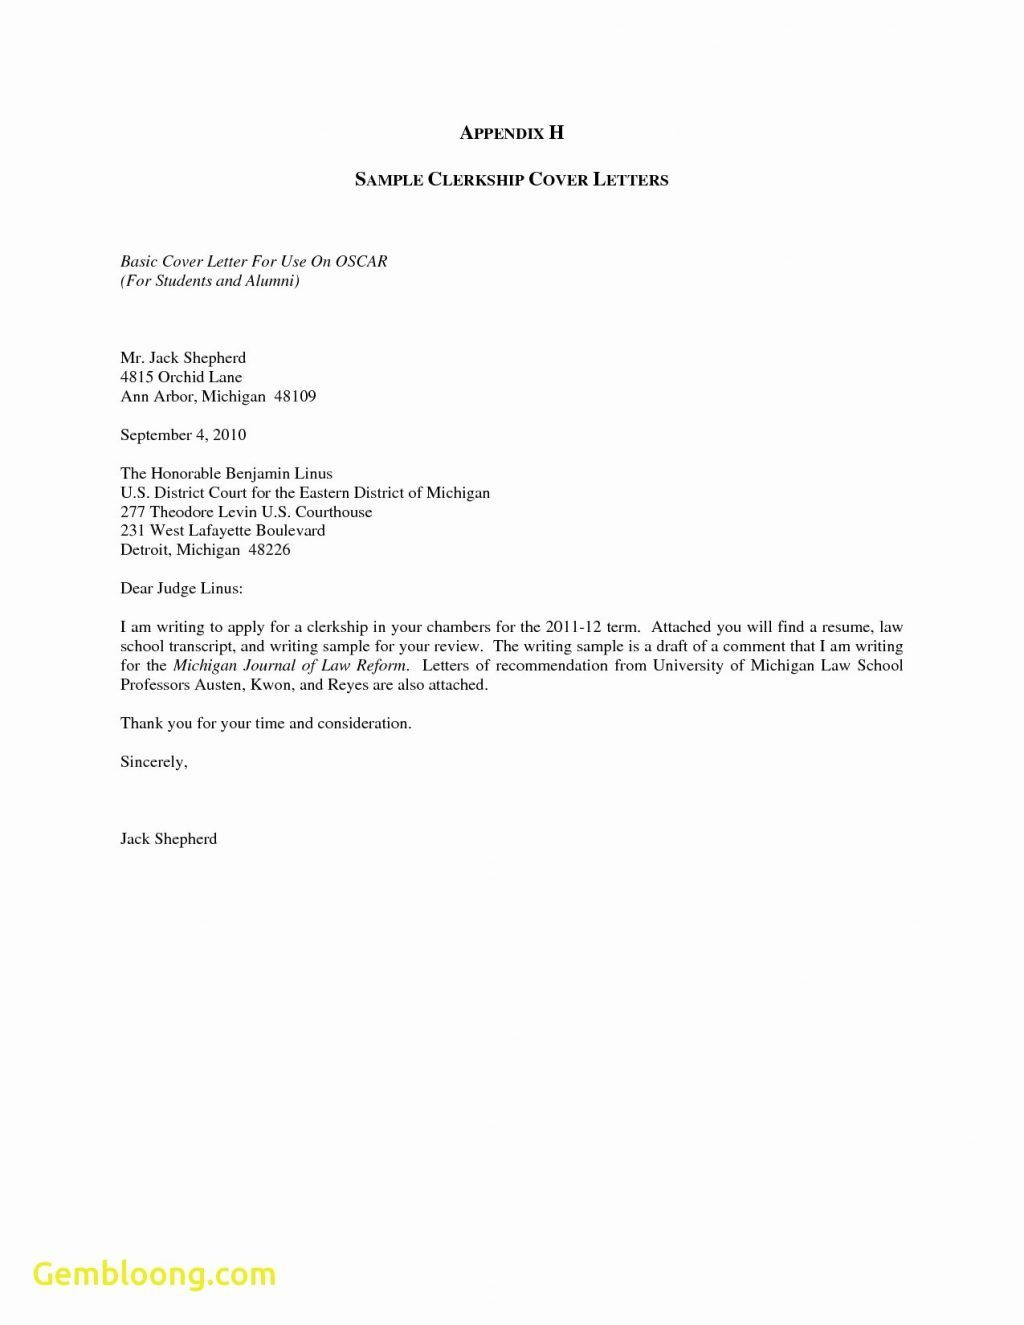 General Cover Letter Sample Pdf